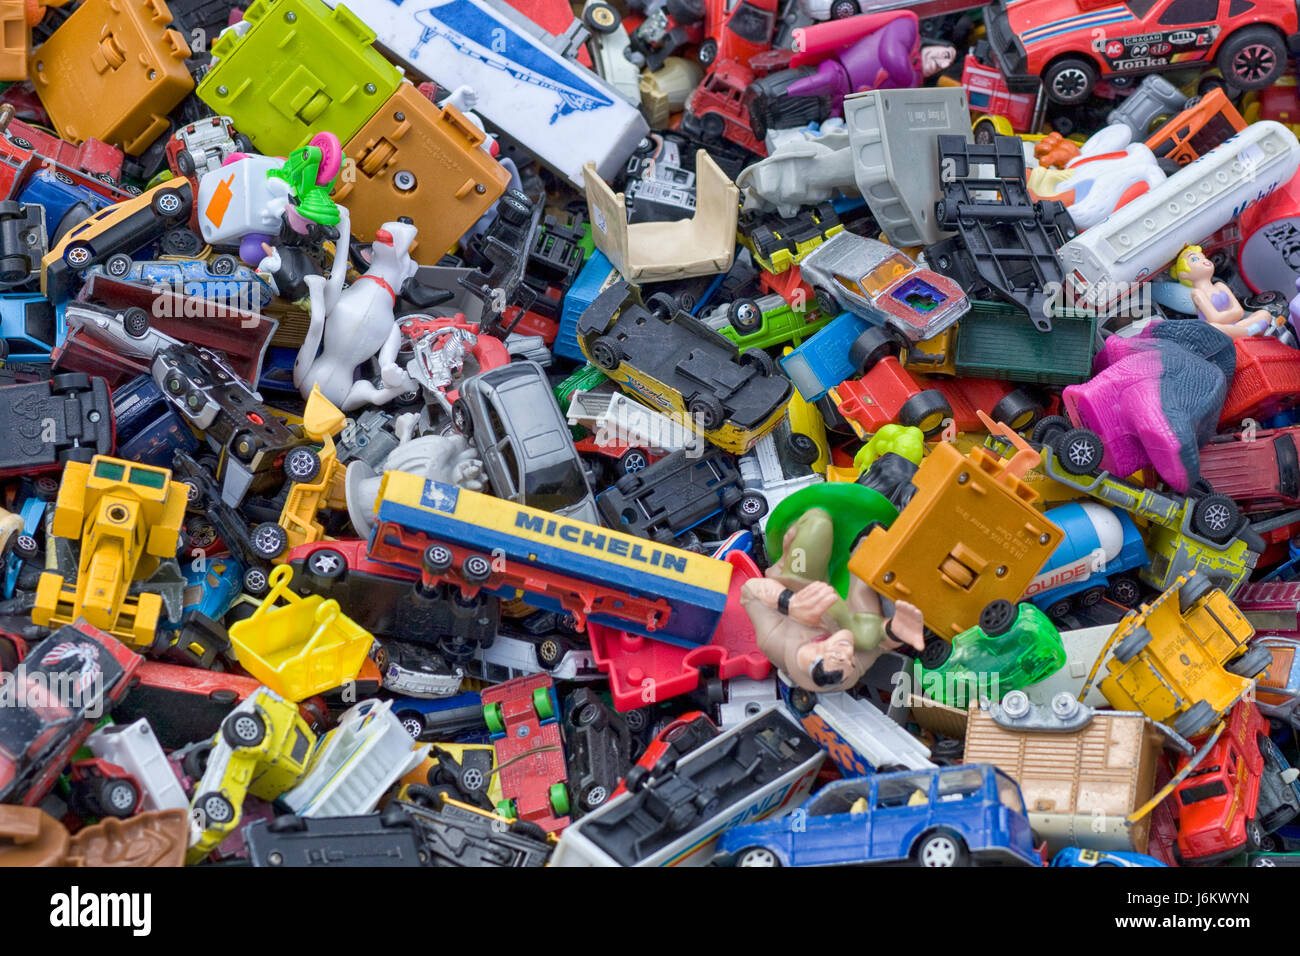 Toy Box Toys Toy Cars And Plastic Toys In A Toy Box Stock Photo